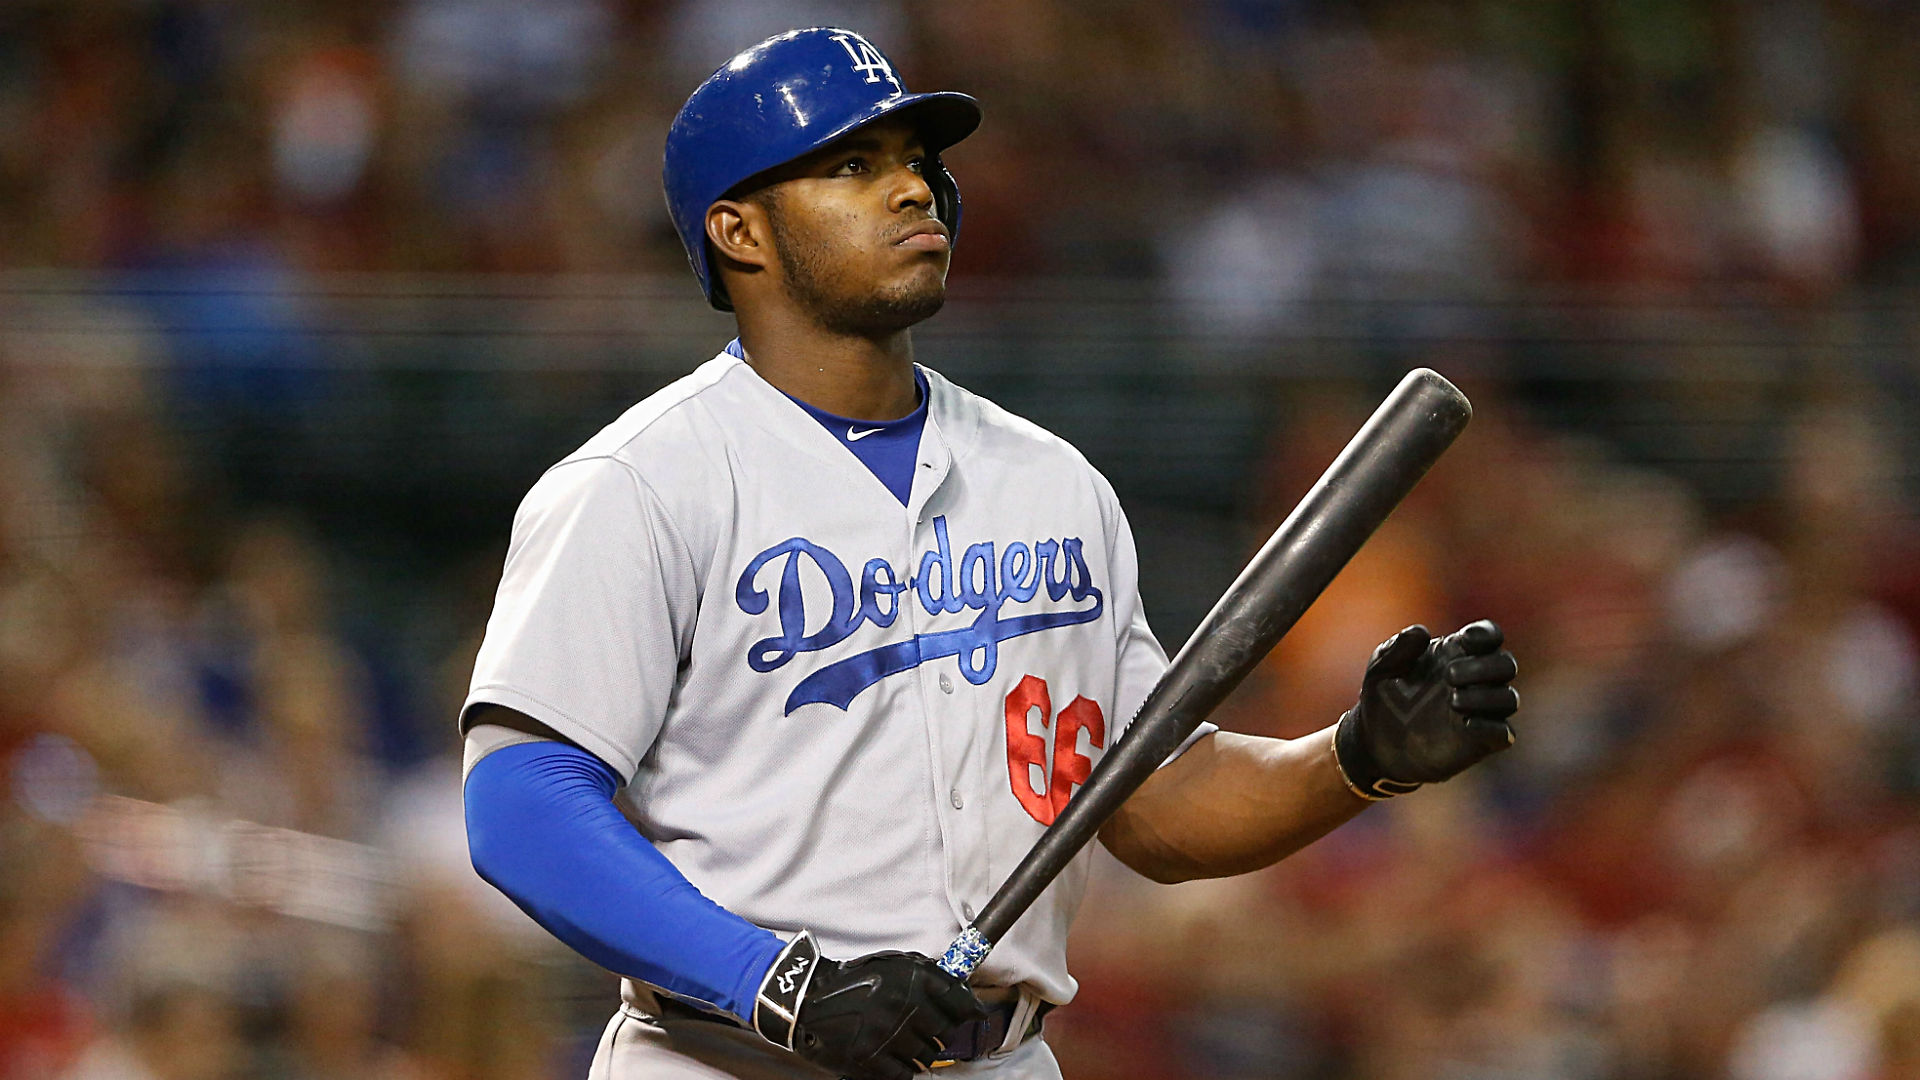 SOURCE SPORTS: MLB Star Yasiel Puig Sued For Sexual Battery At Lakers Game